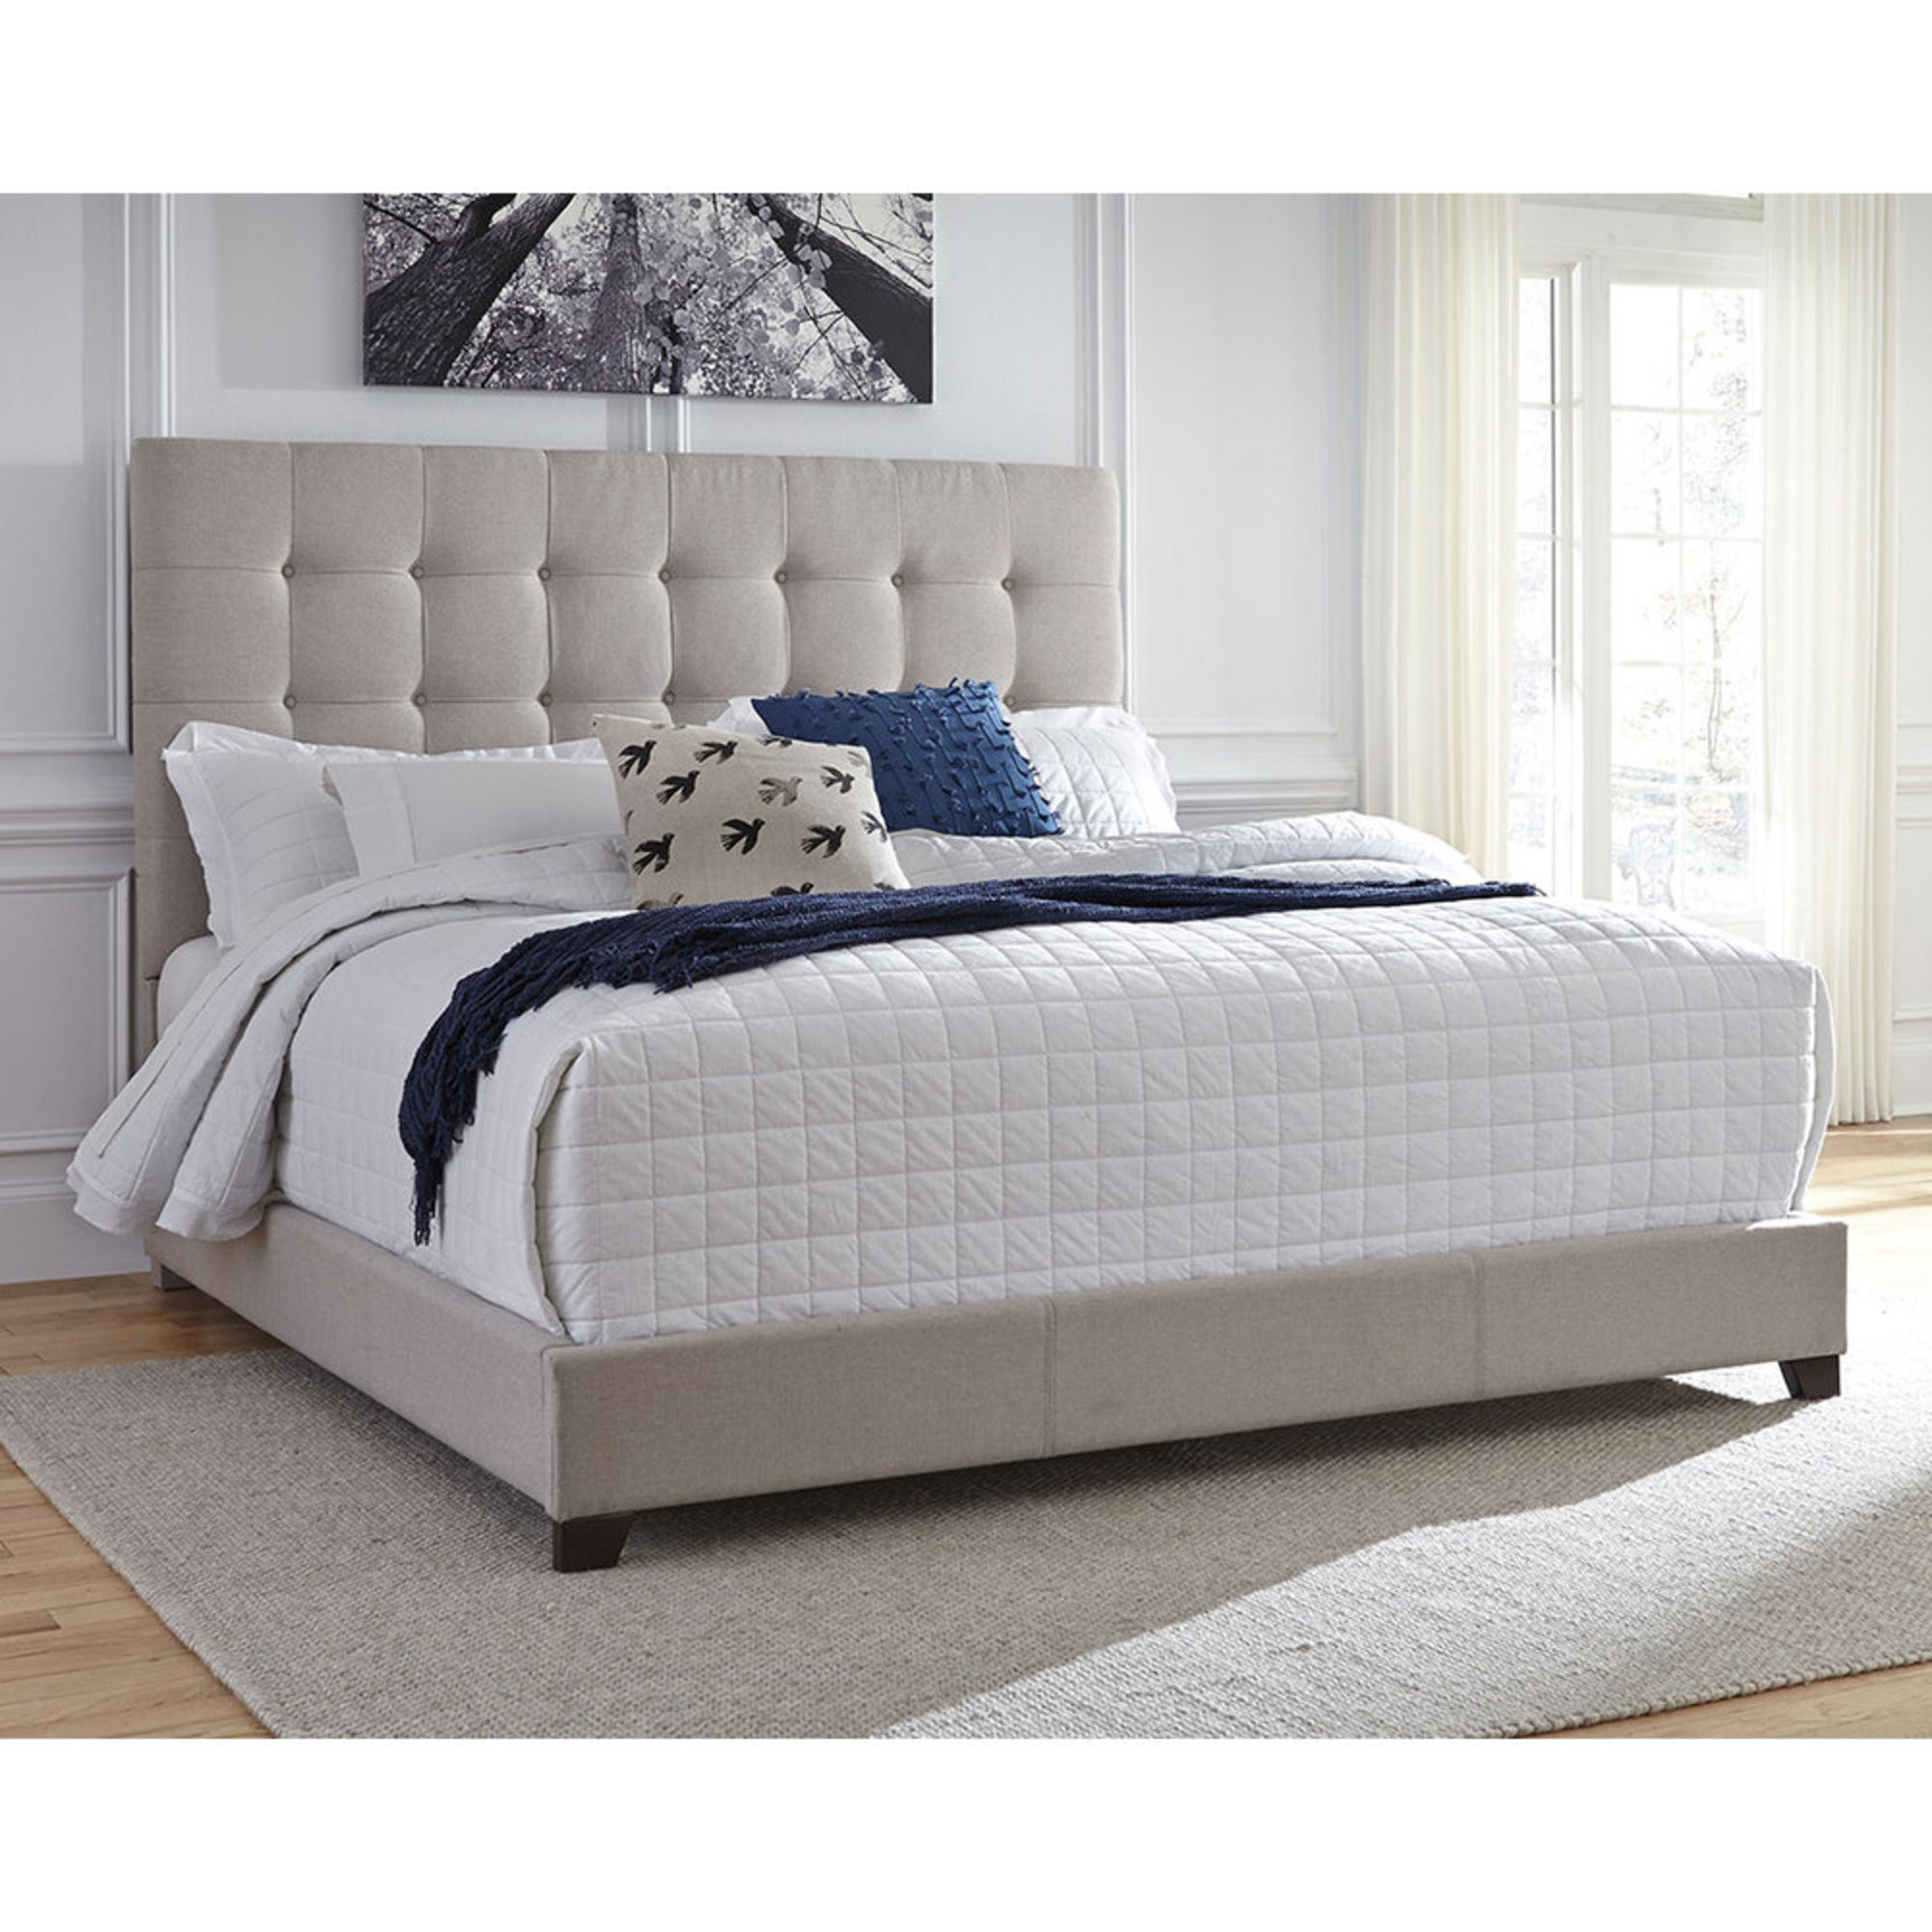 Signature Design By Ashley Contemporary Upholstered Beds